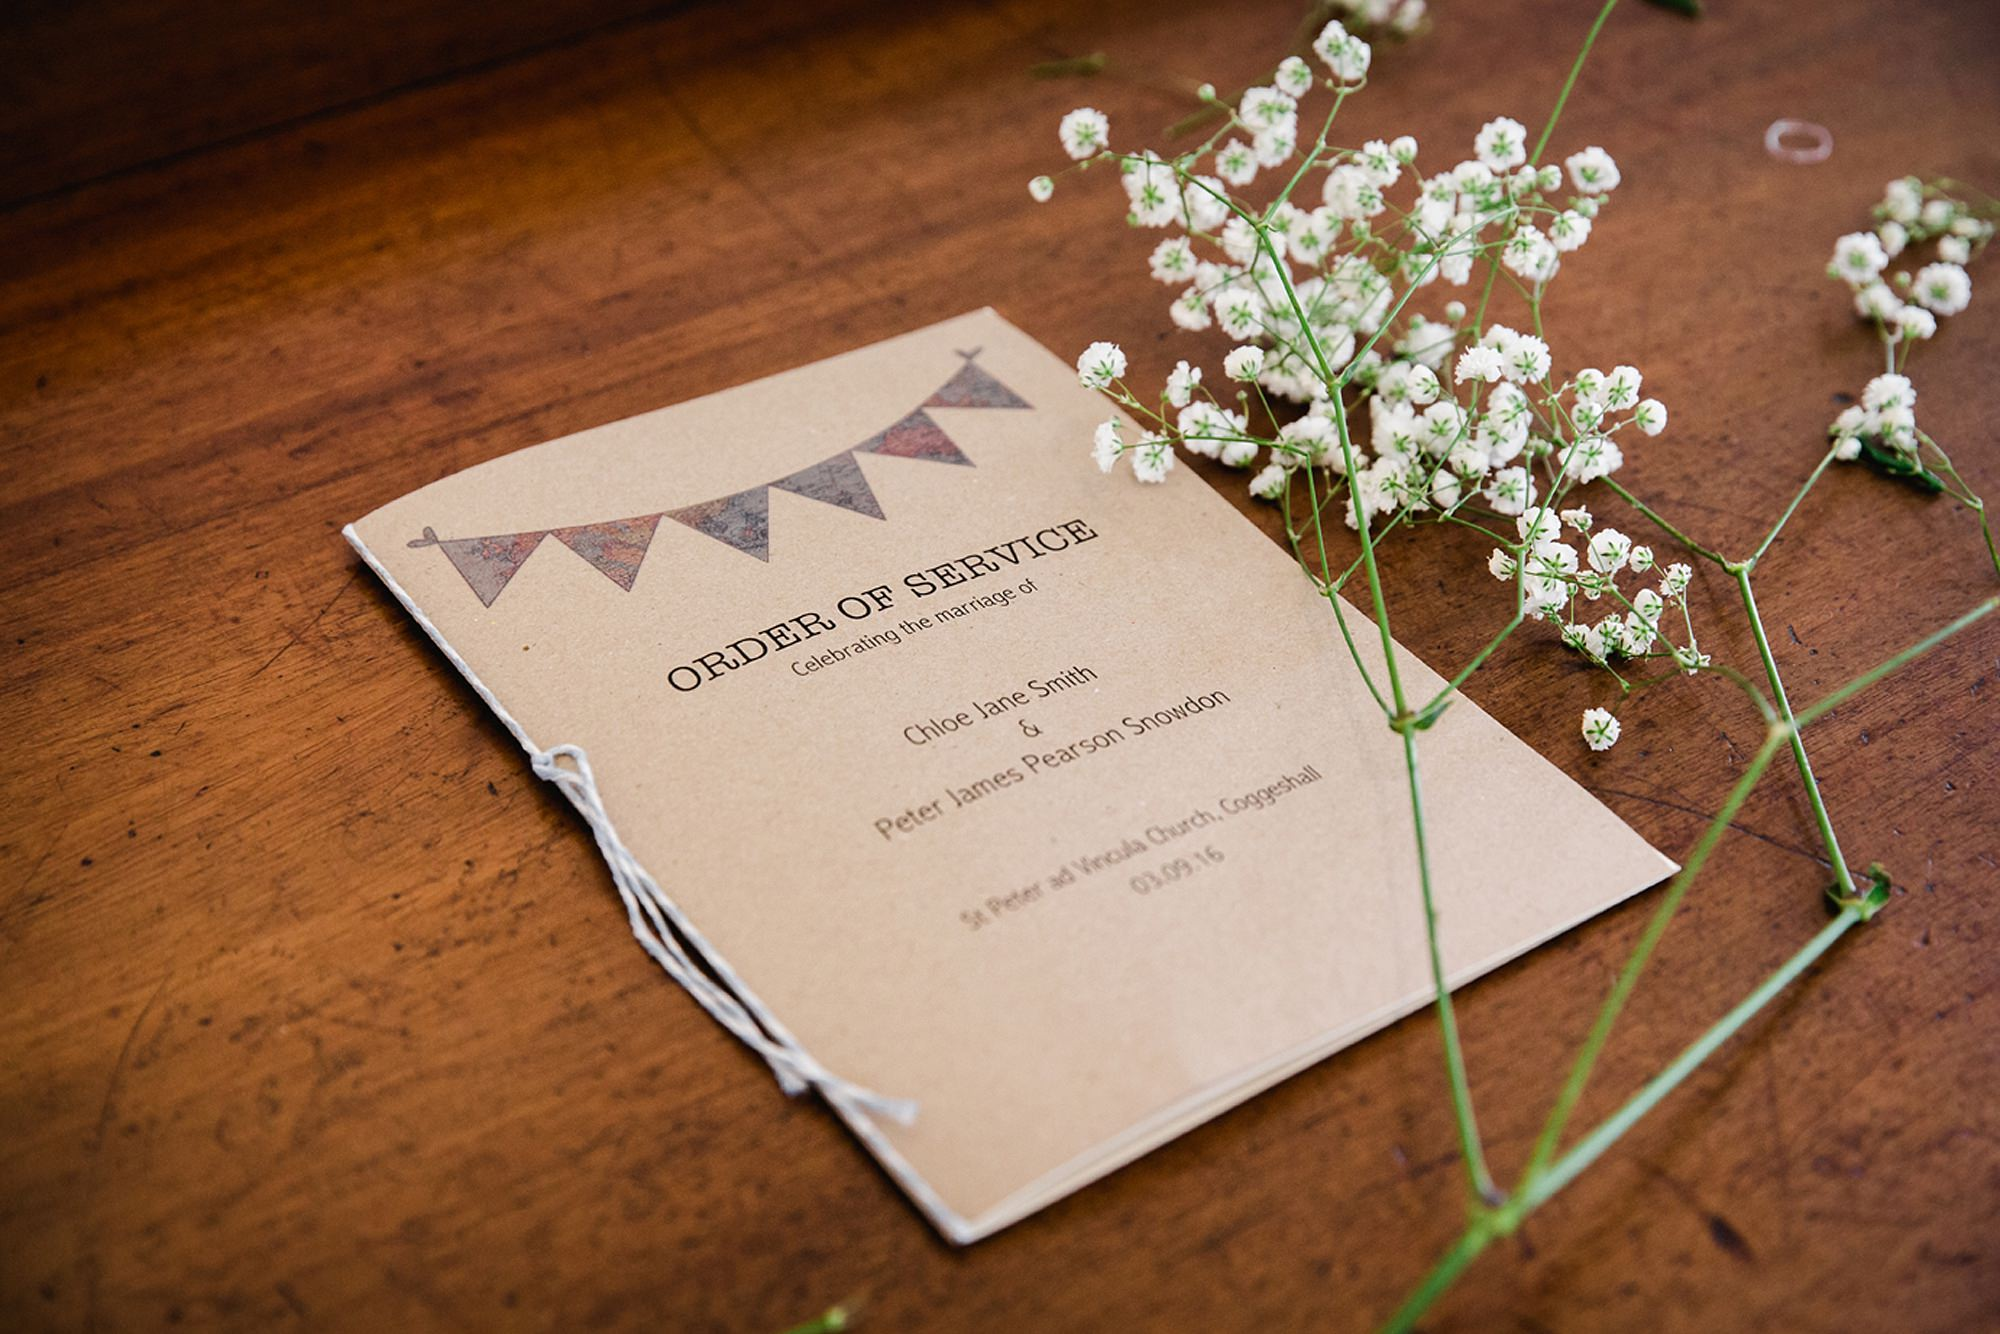 Marks Hall Estate wedding photography handmade order of service